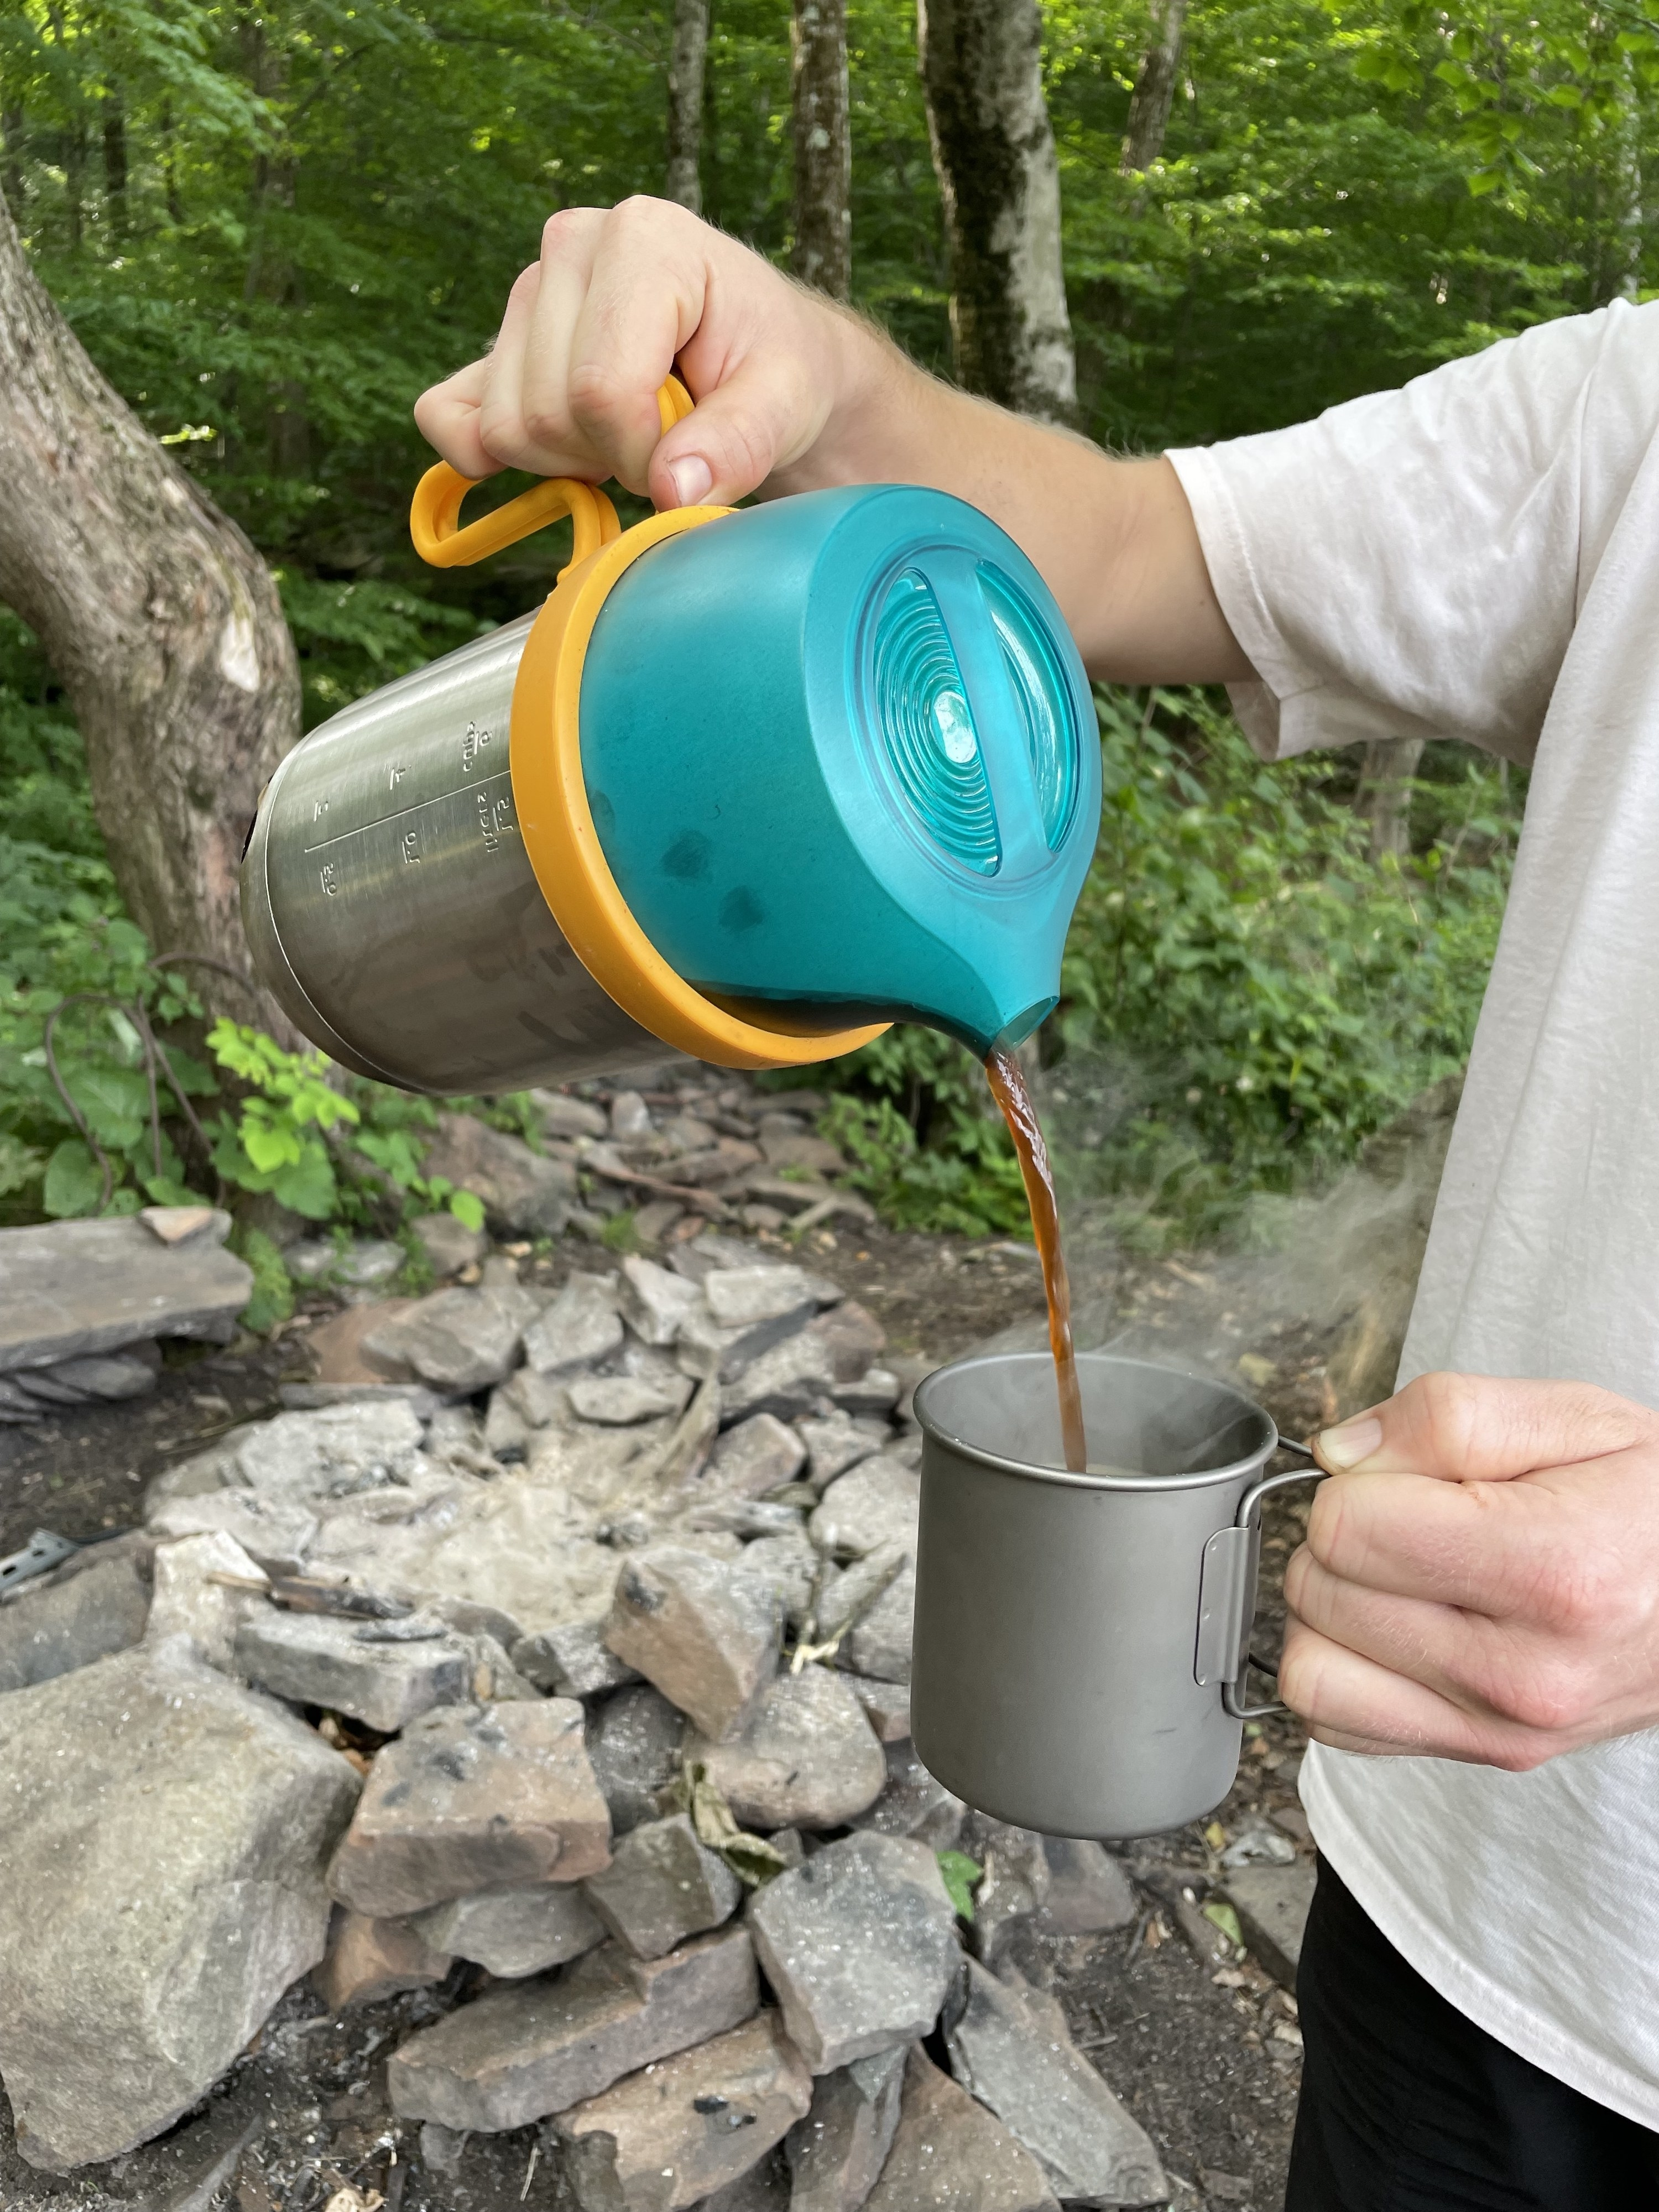 coffee being poured from the Biolite water heater